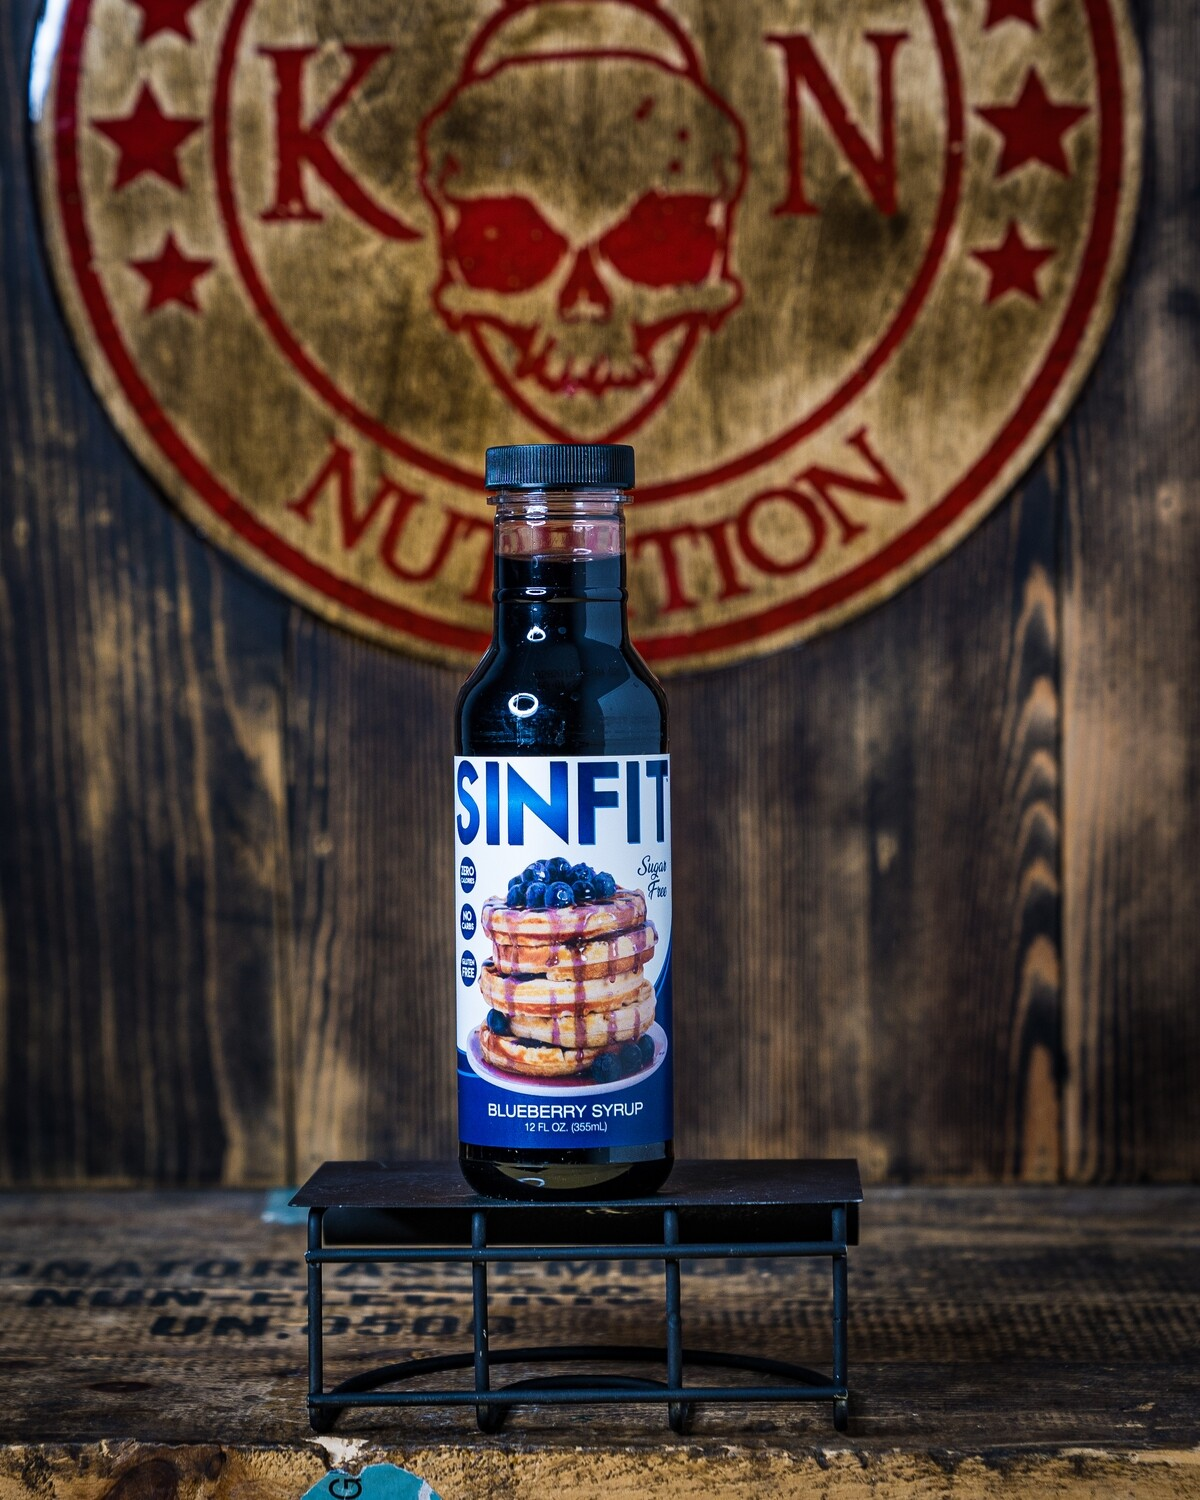 Sinfit, Blueberry Syrup,12 Fl Oz